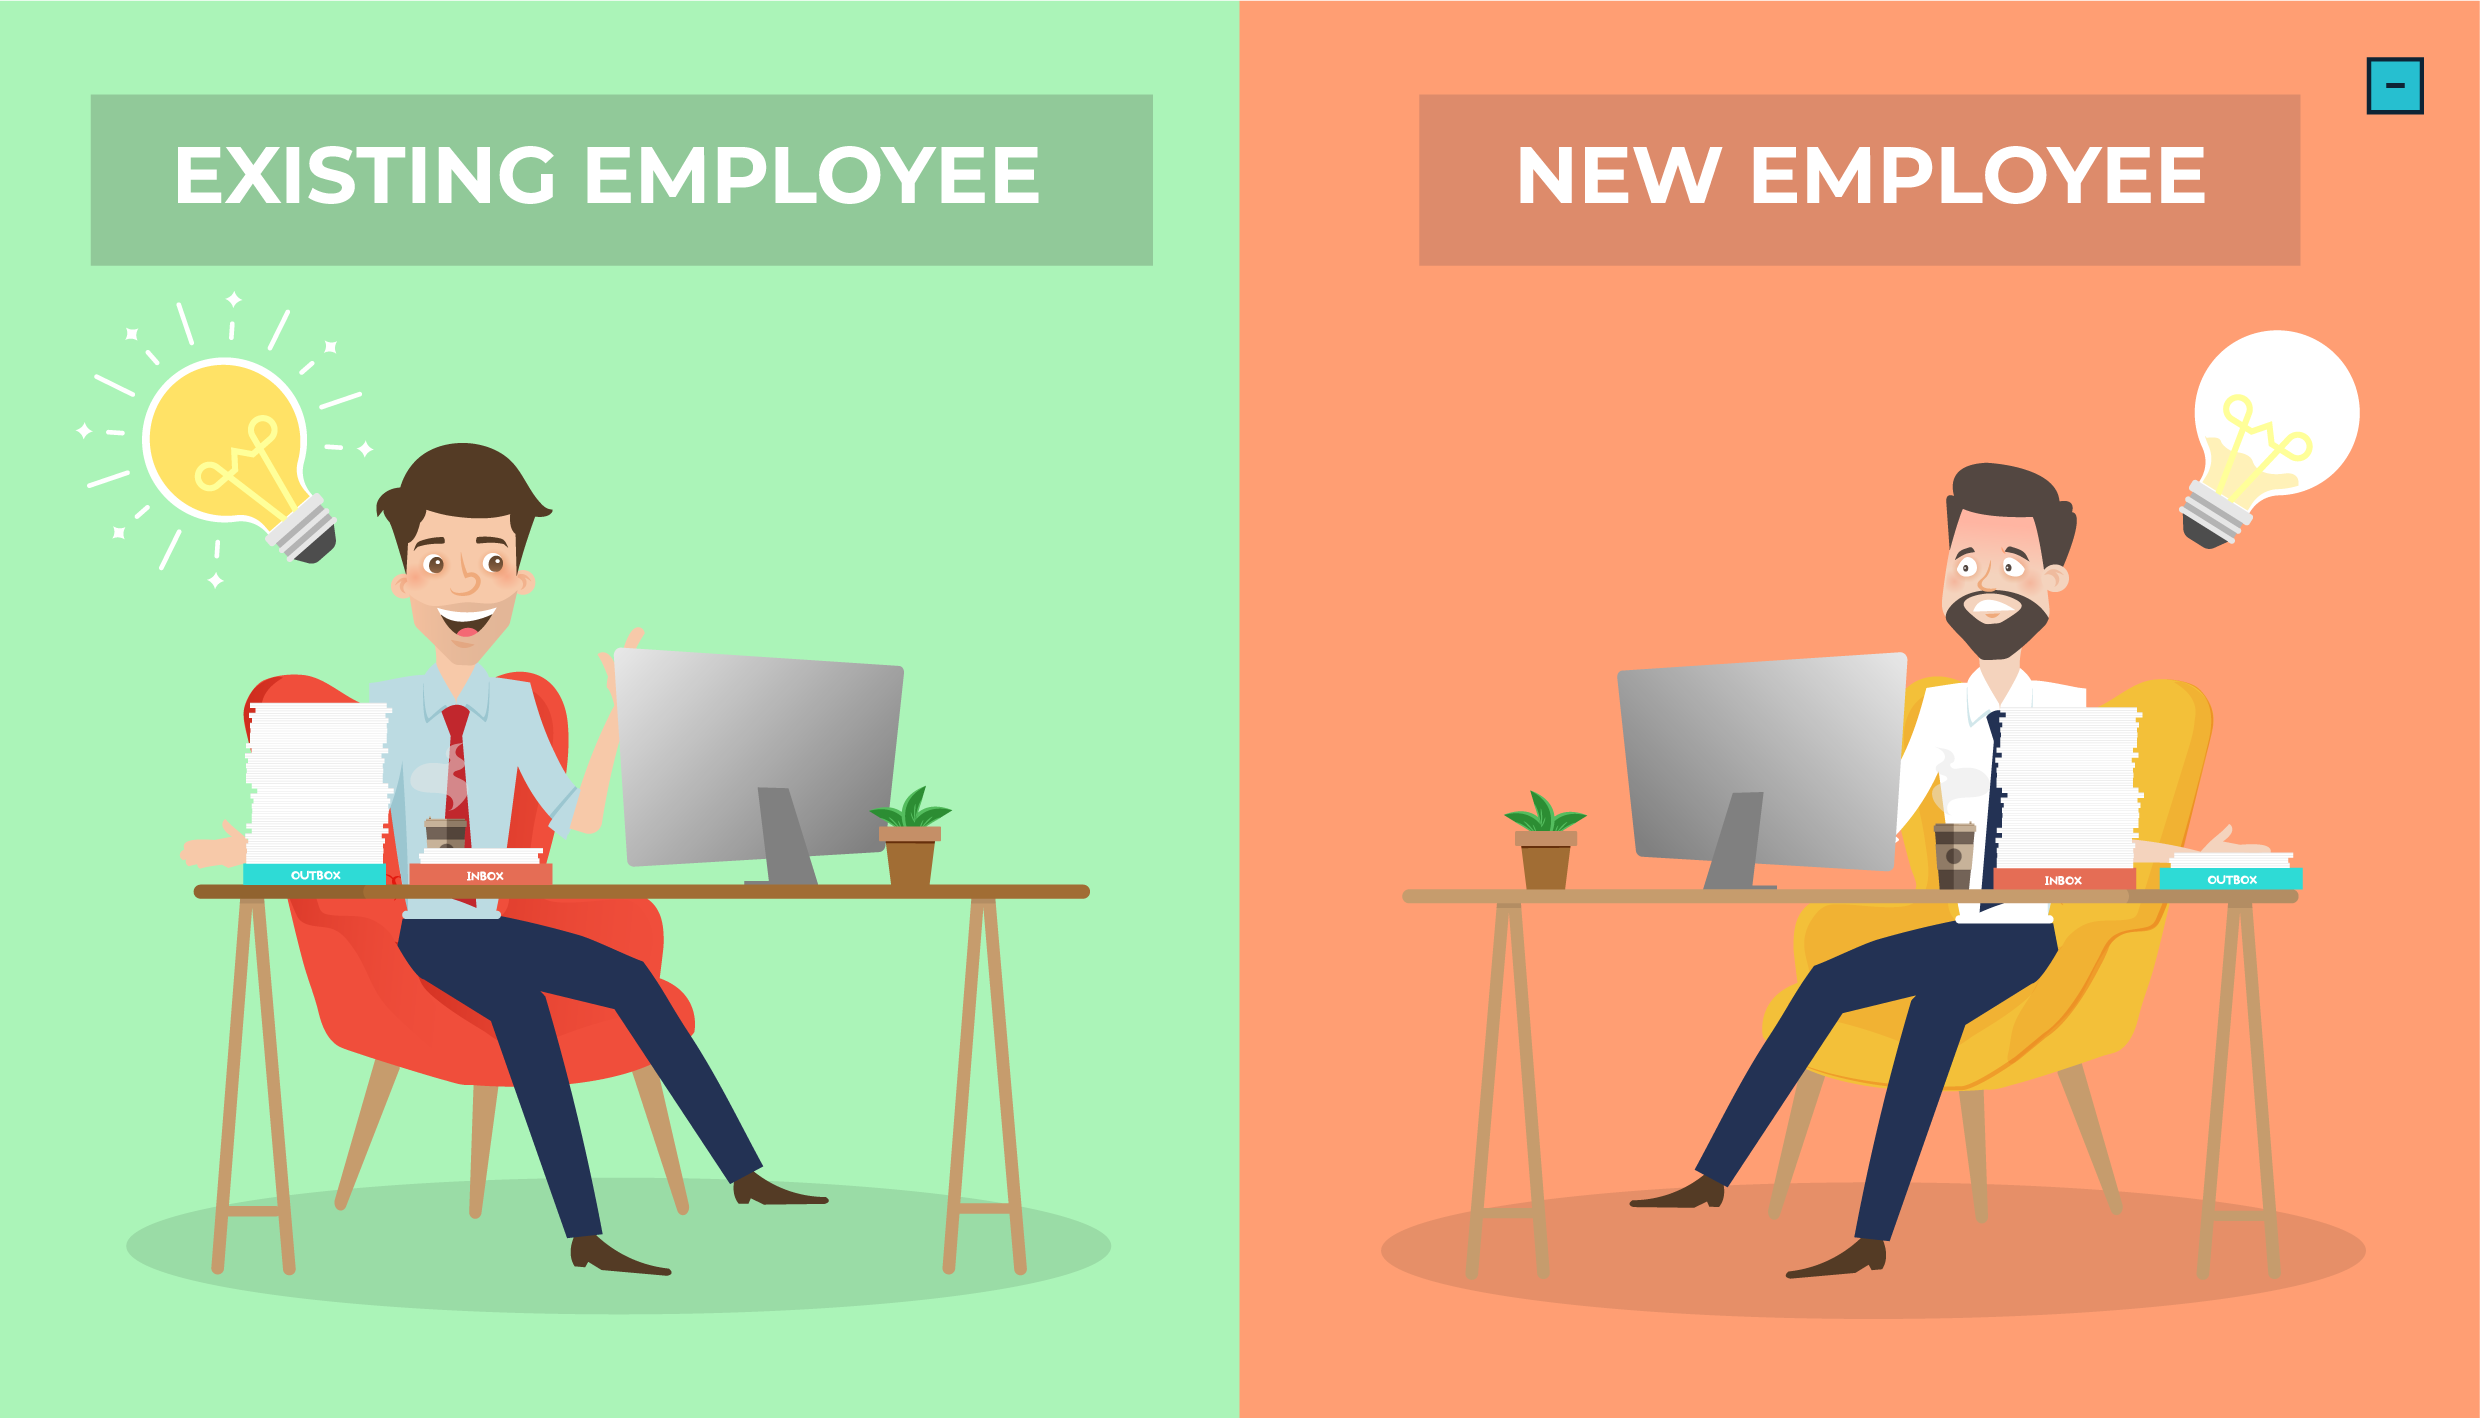 New employees are less productive than existing ones.